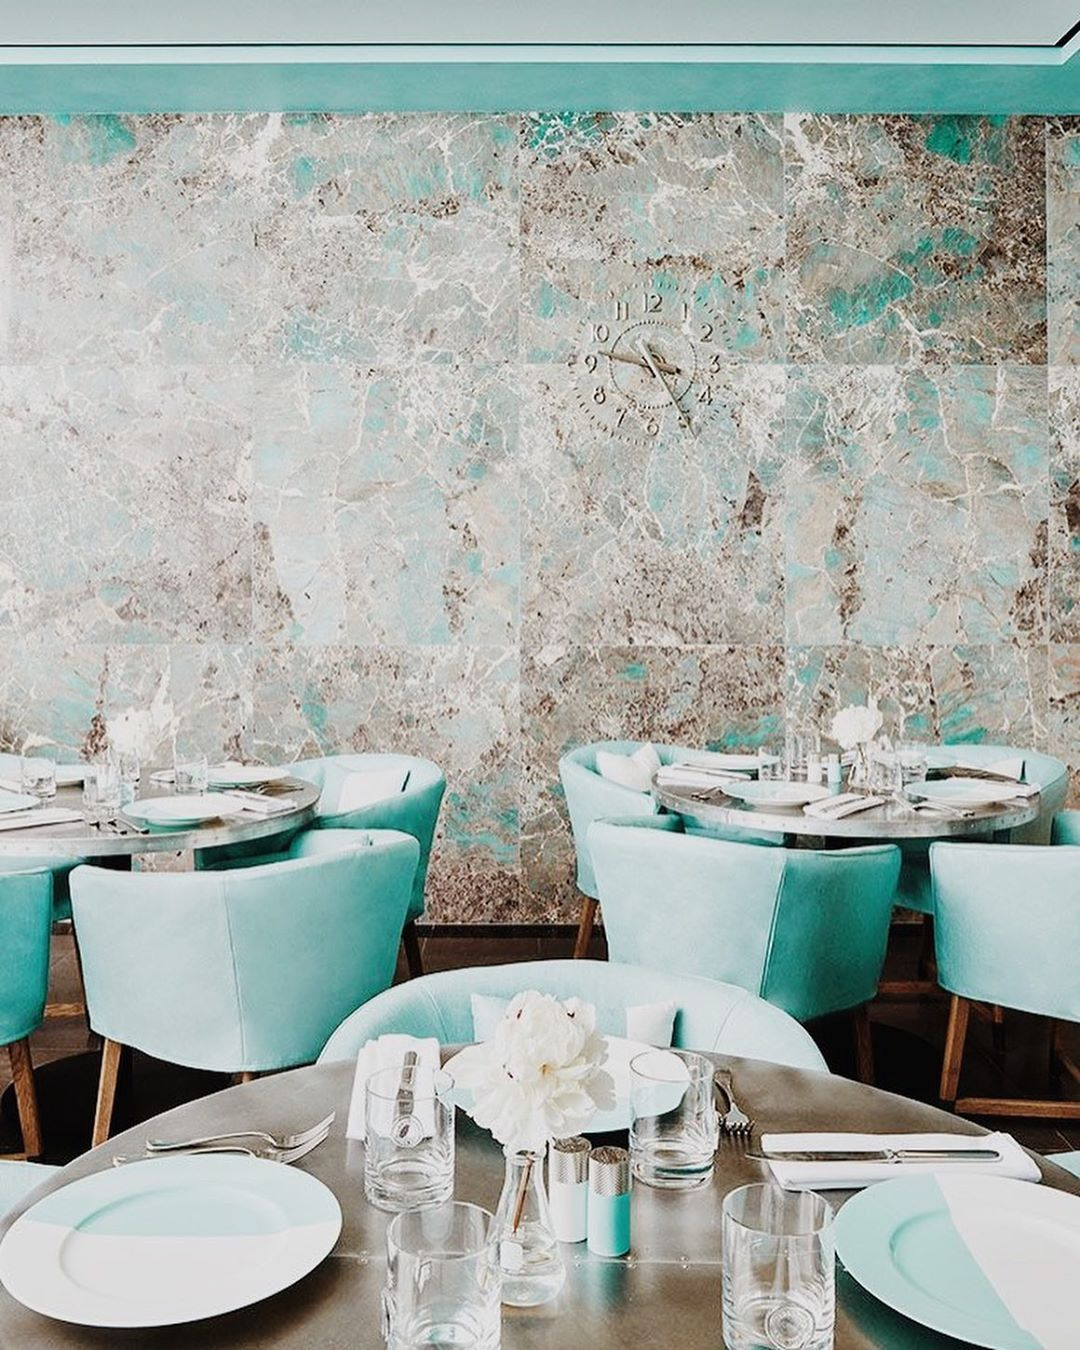 Tiffany & Co's Famous Blue Box Cafe Will Close for Two Years